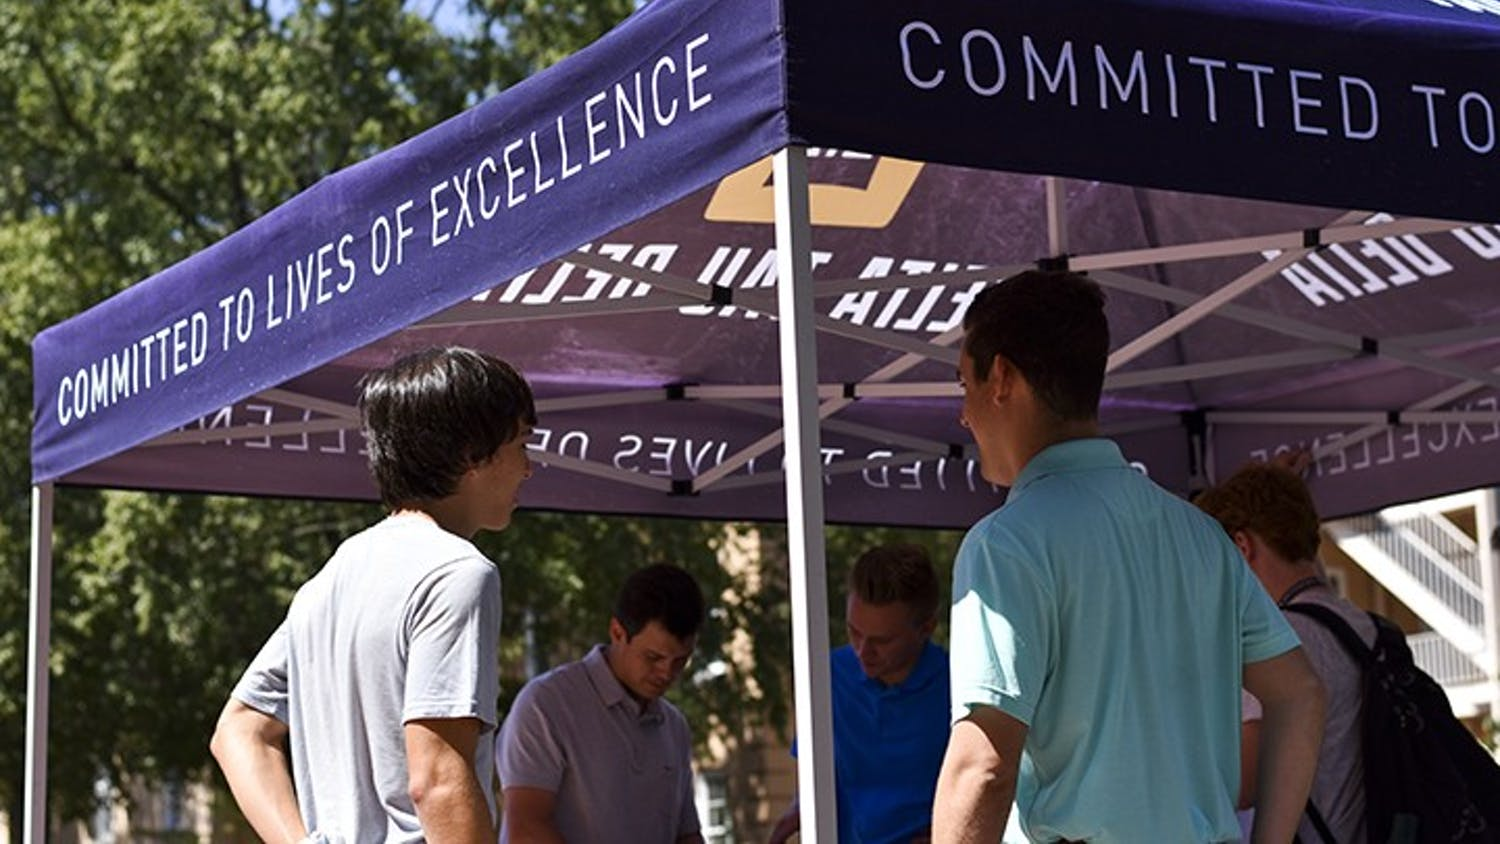 Delta Tau Delta is returning to the University of South Carolina campus following a temporary suspension in September of 2014. Founding members have been seen around campus recruiting and raising awareness of the returning fraternity.